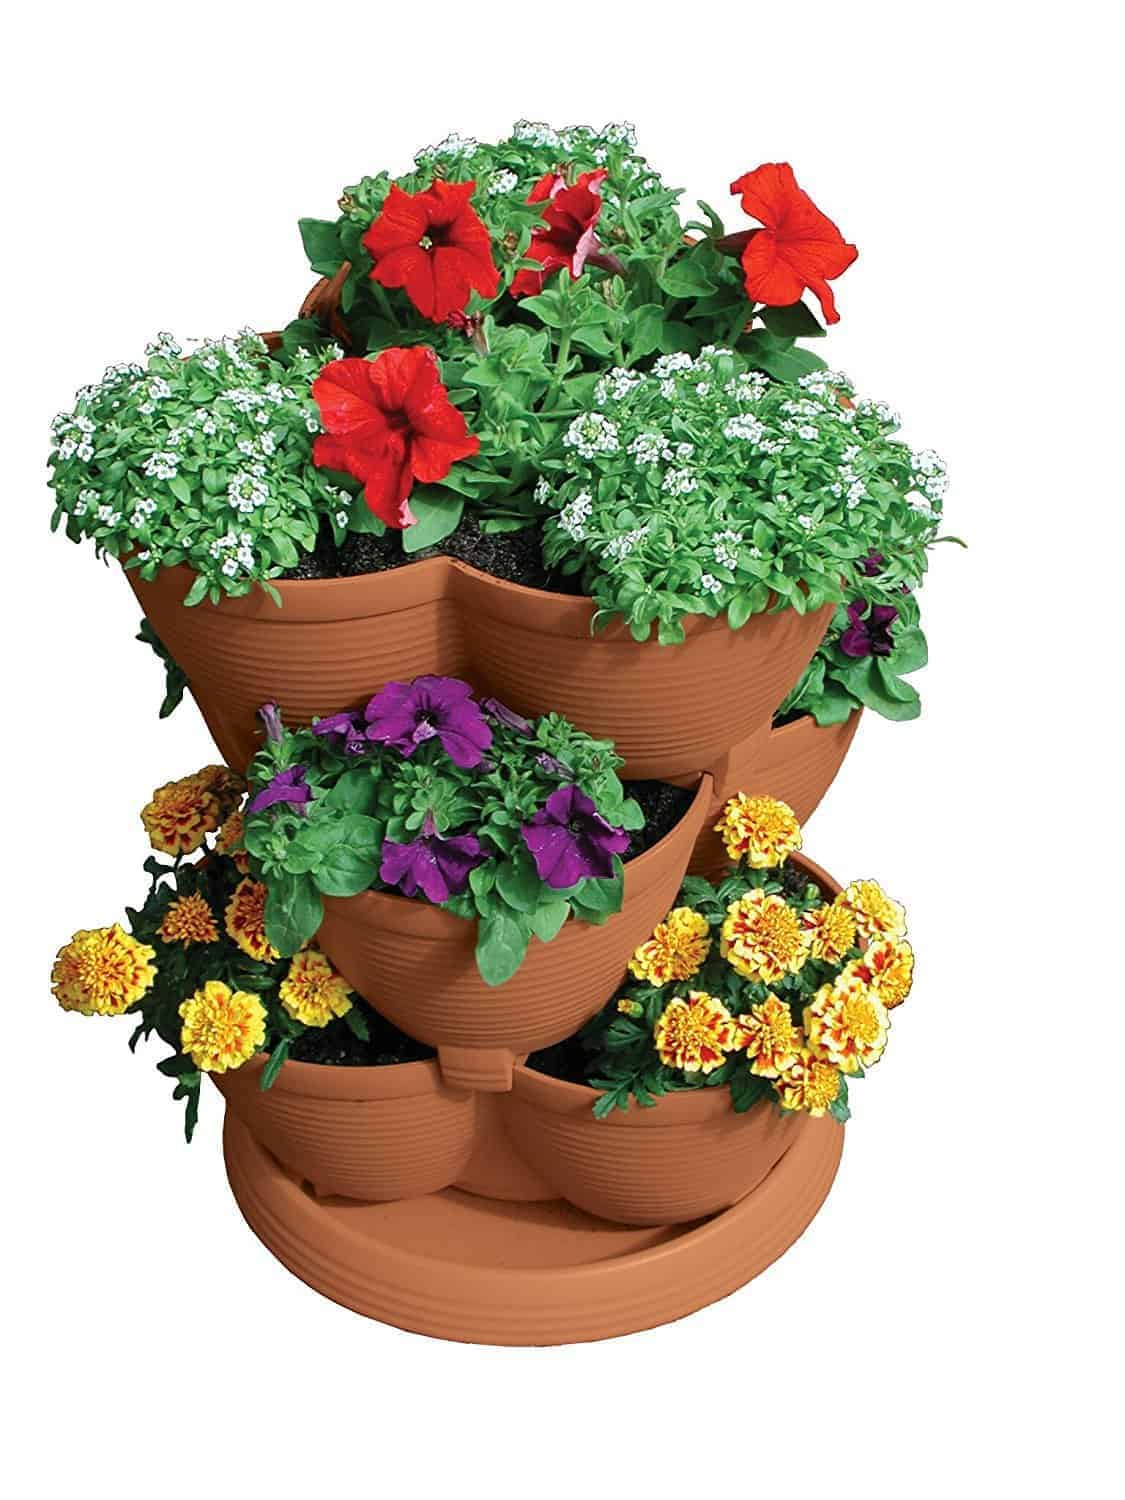 Medium Vertical Strawberry Planter From Akro Mils